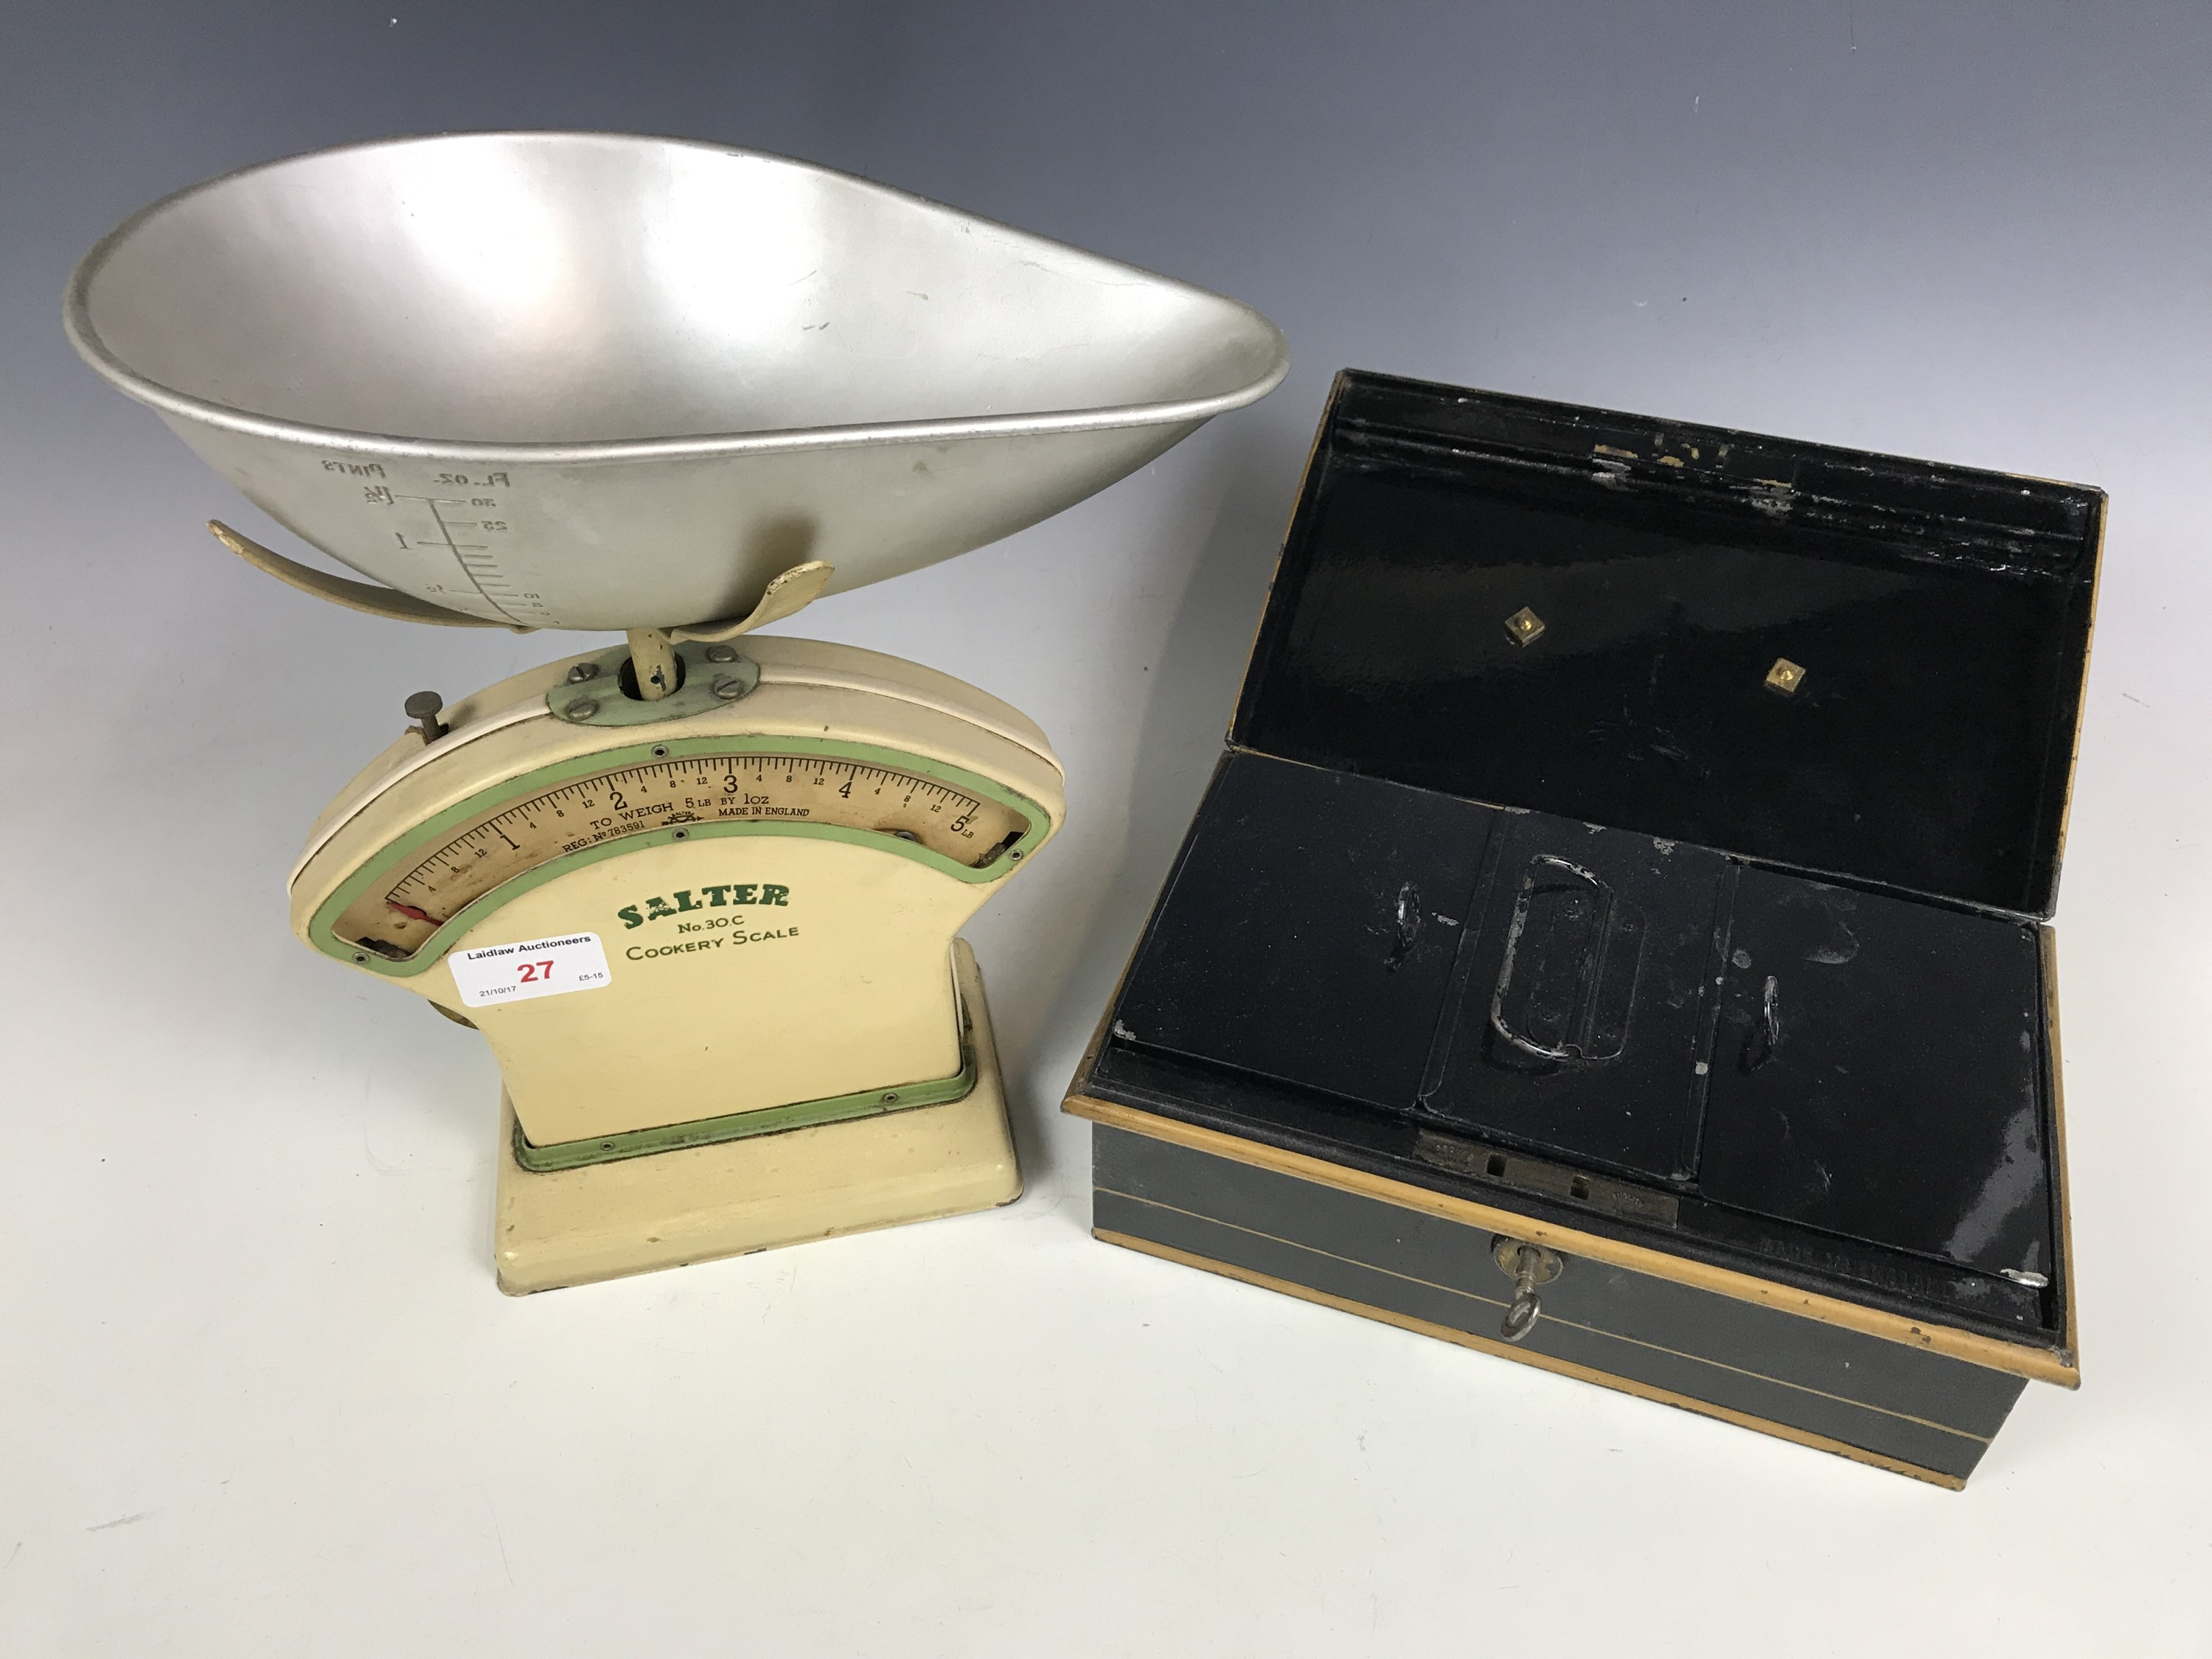 Lot 27 - A vintage set of Salter No 30L cookery scales together with a cash box